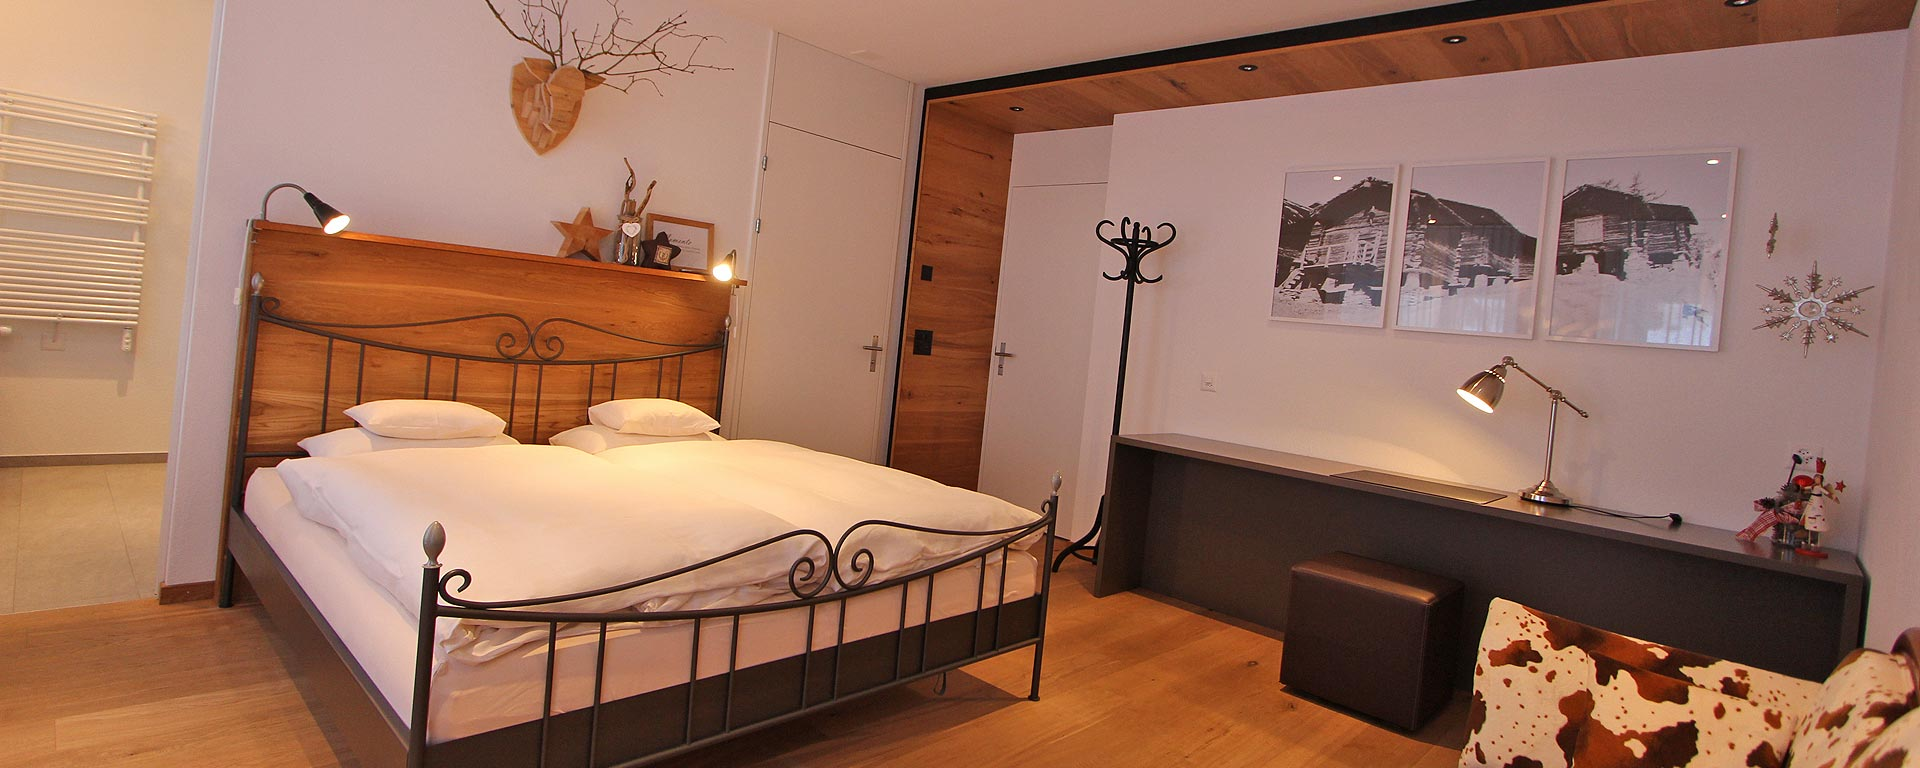 ferienwohnung loft b2 im burgener haus in saas grund wallis. Black Bedroom Furniture Sets. Home Design Ideas